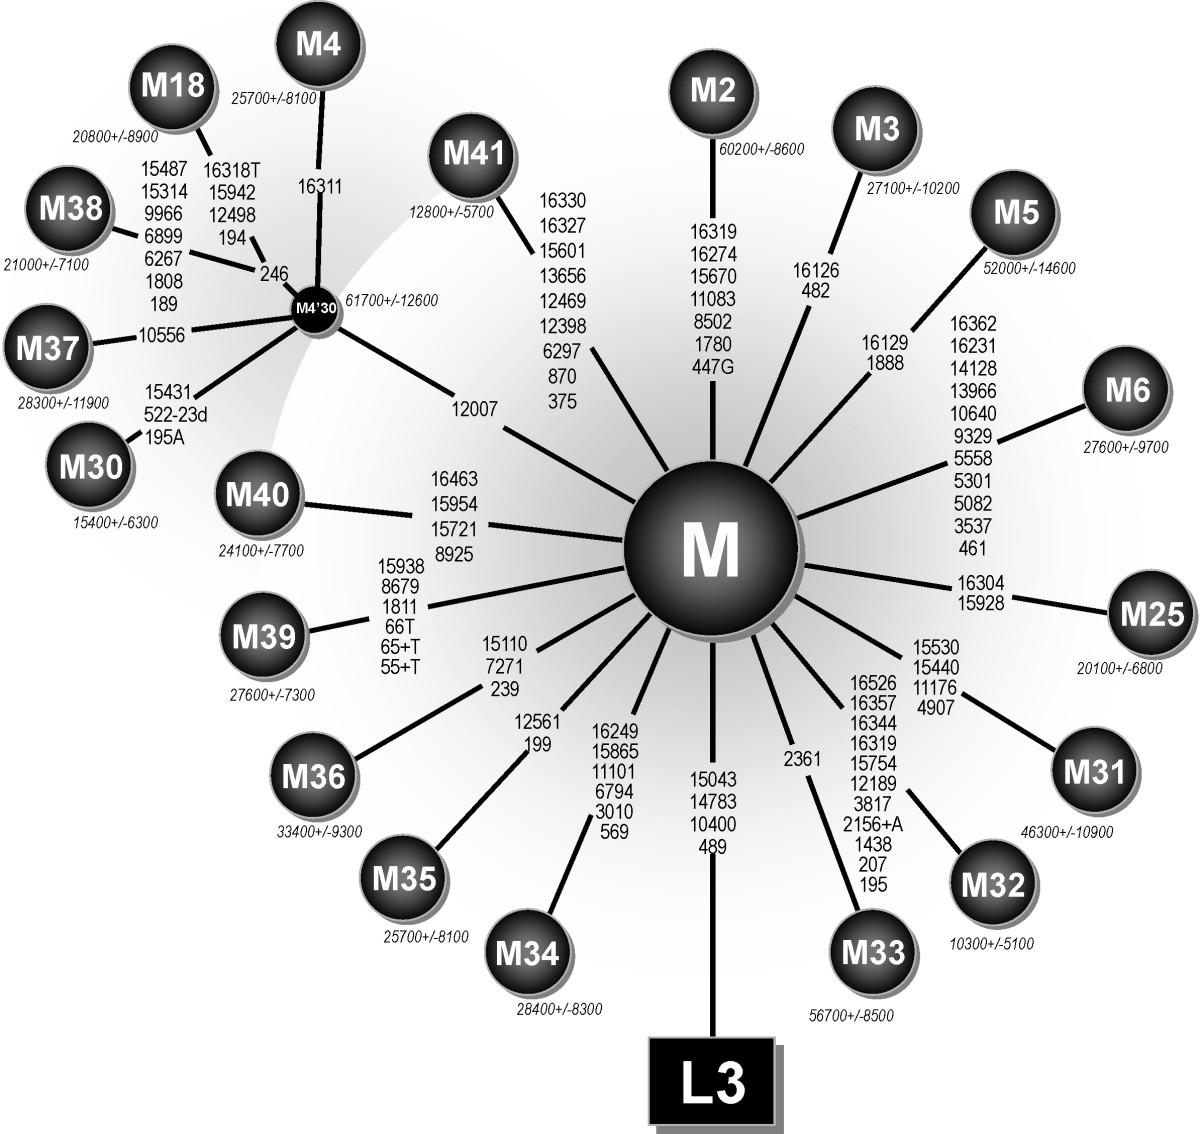 http://static-content.springer.com/image/art%3A10.1186%2F1471-2164-7-151/MediaObjects/12864_2005_Article_534_Fig1_HTML.jpg